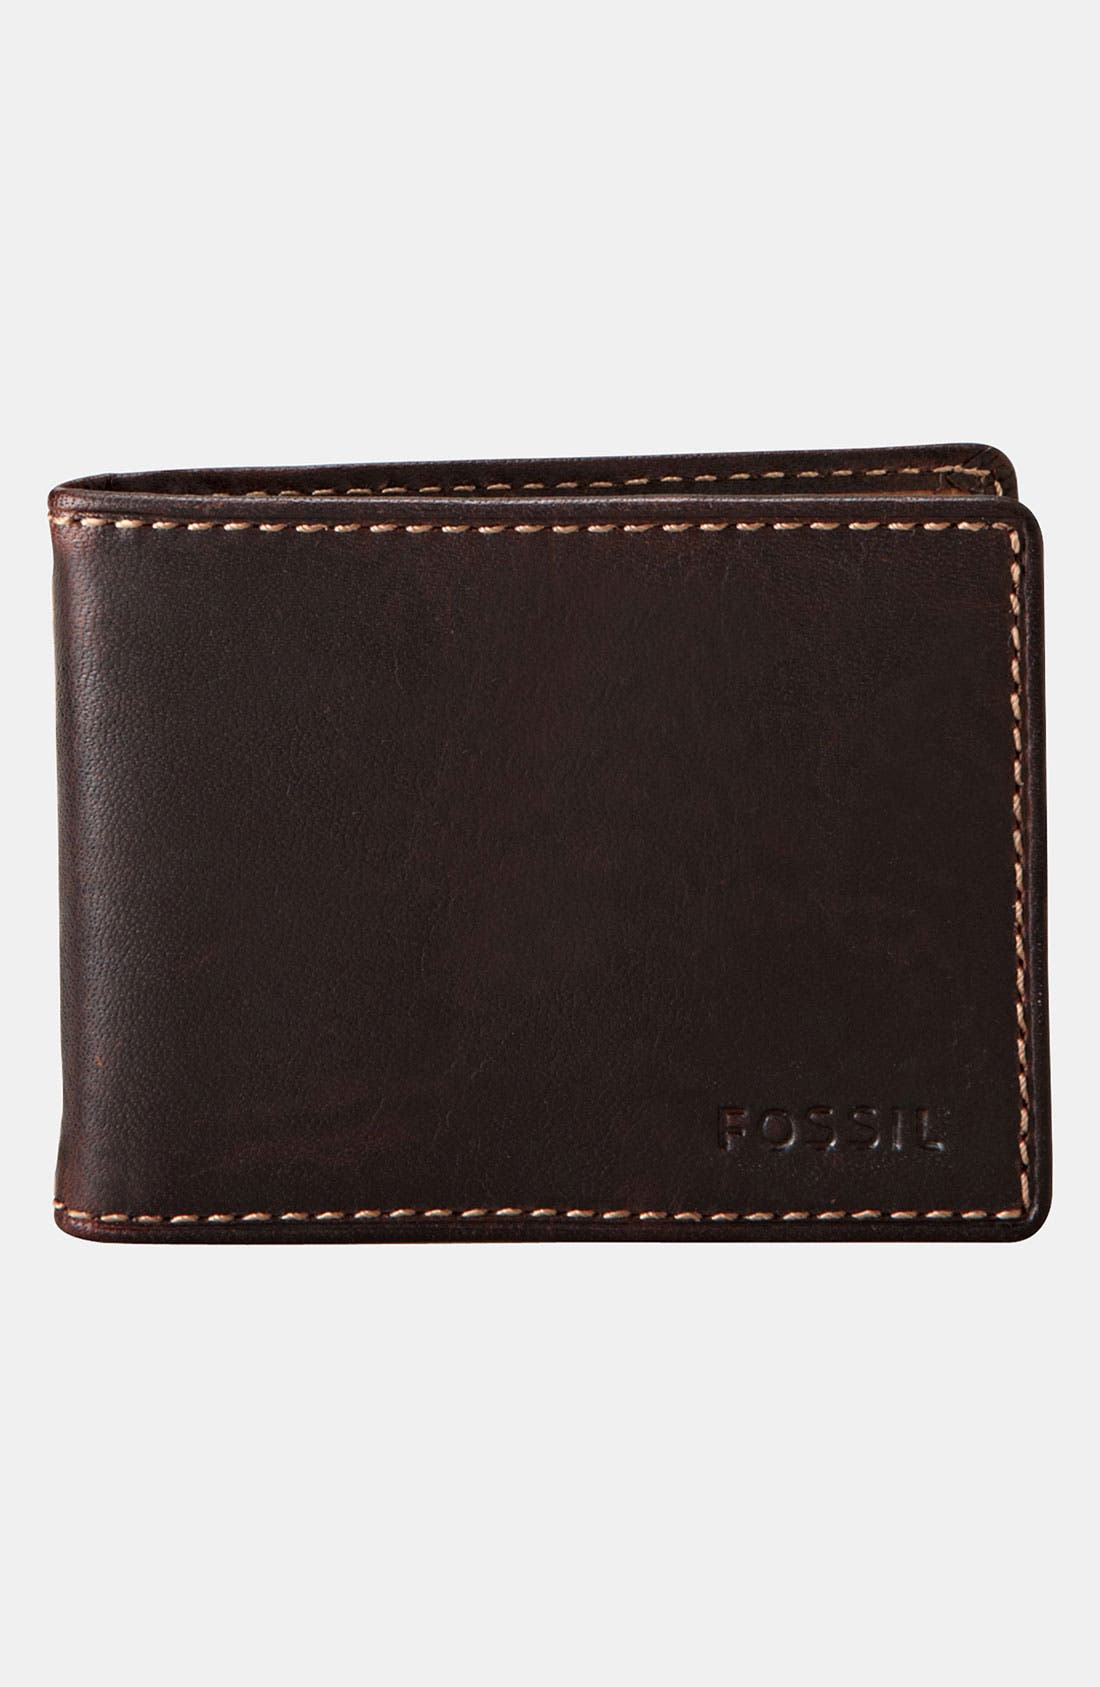 Main Image - Fossil 'Gusset' Money Clip Wallet